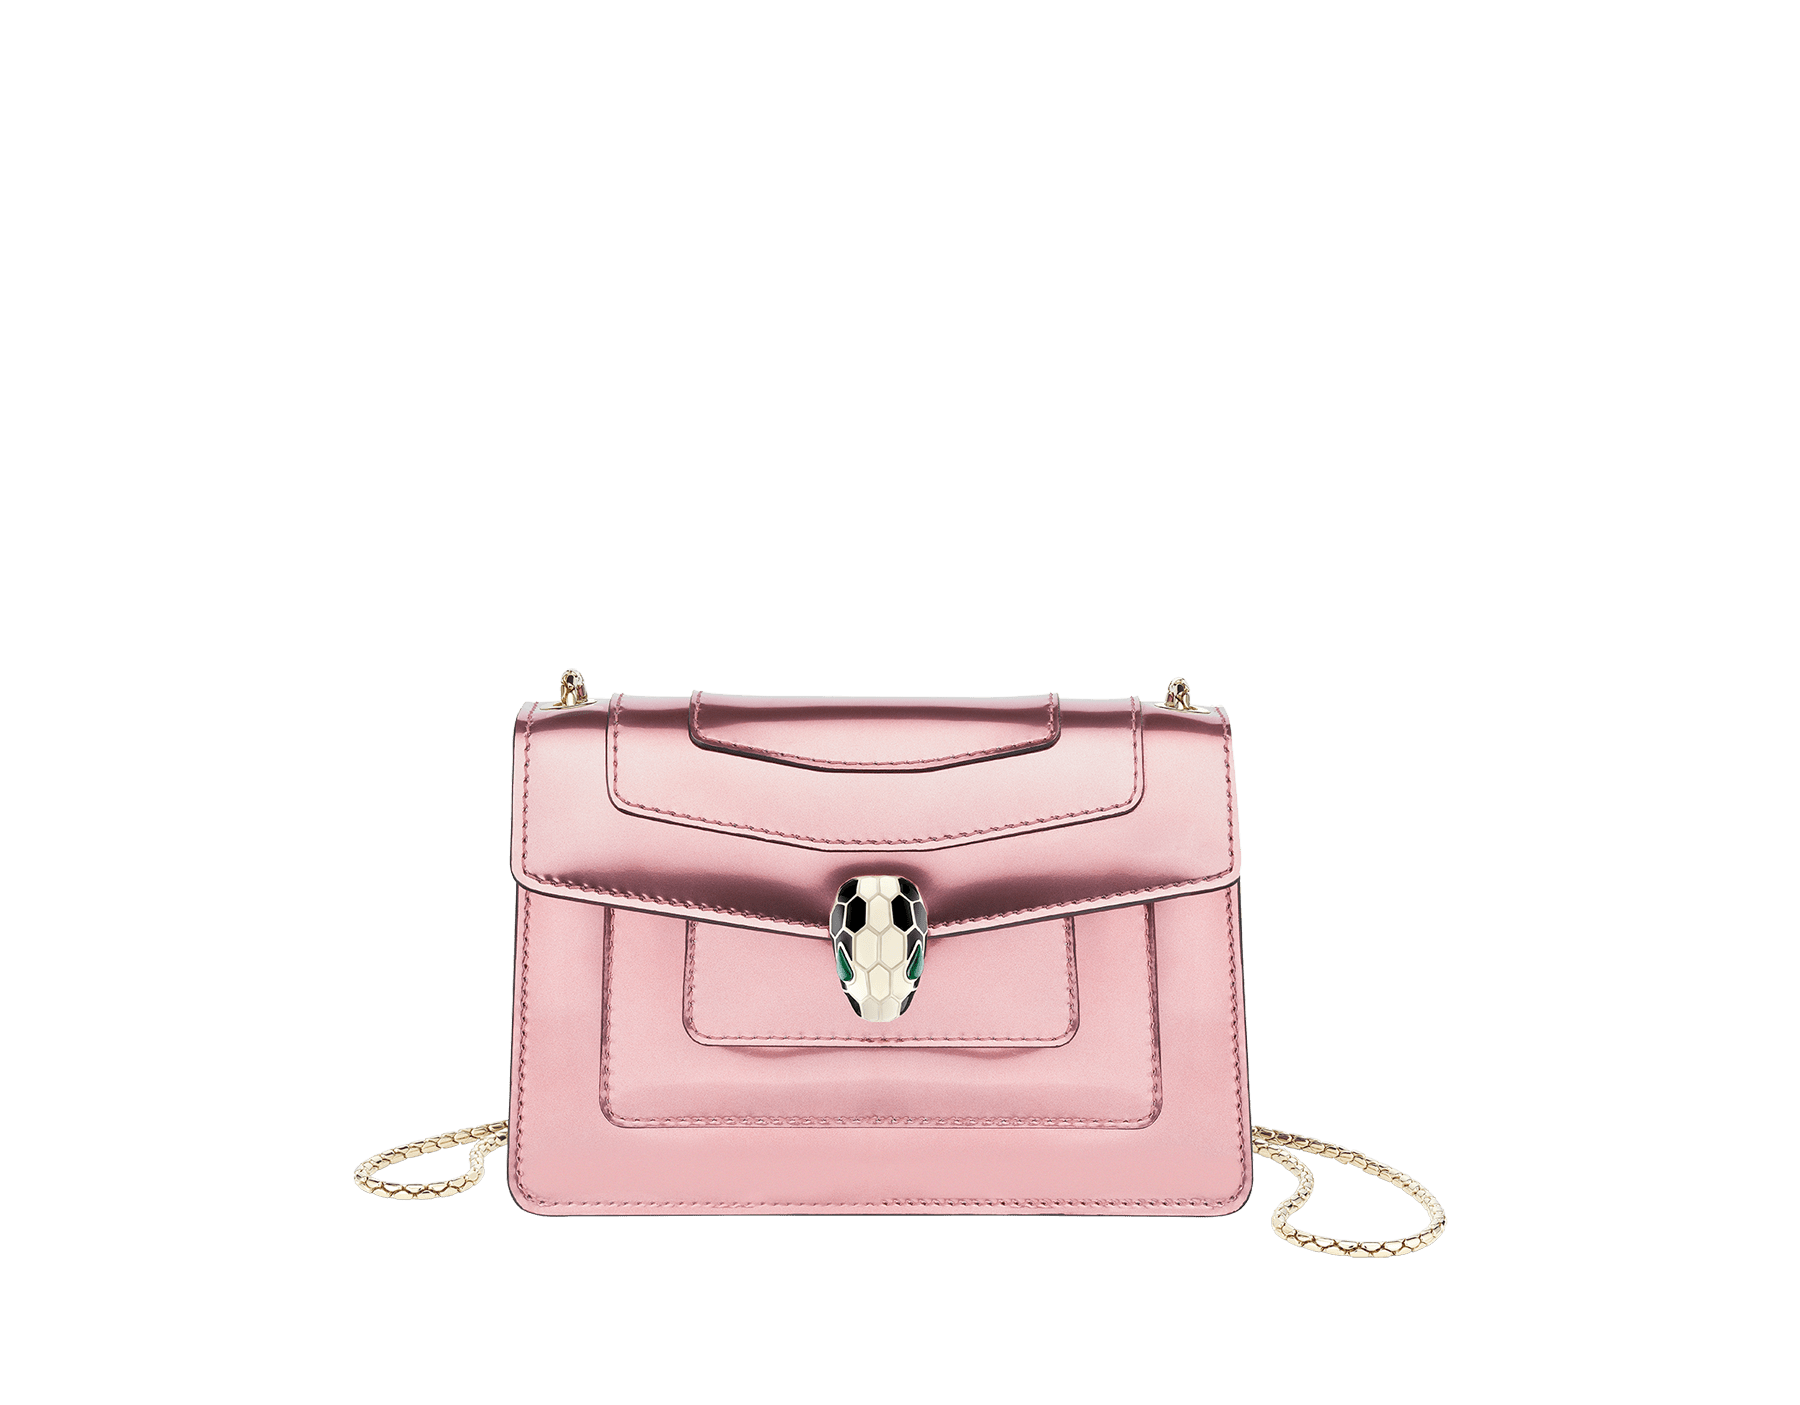 Serpenti Forever mini crossbody bag in sunset rose brushed metallic calf leather. Brass light gold-plated snake head closure in black and white enamel, with green malachite eyes. 288052 image 1